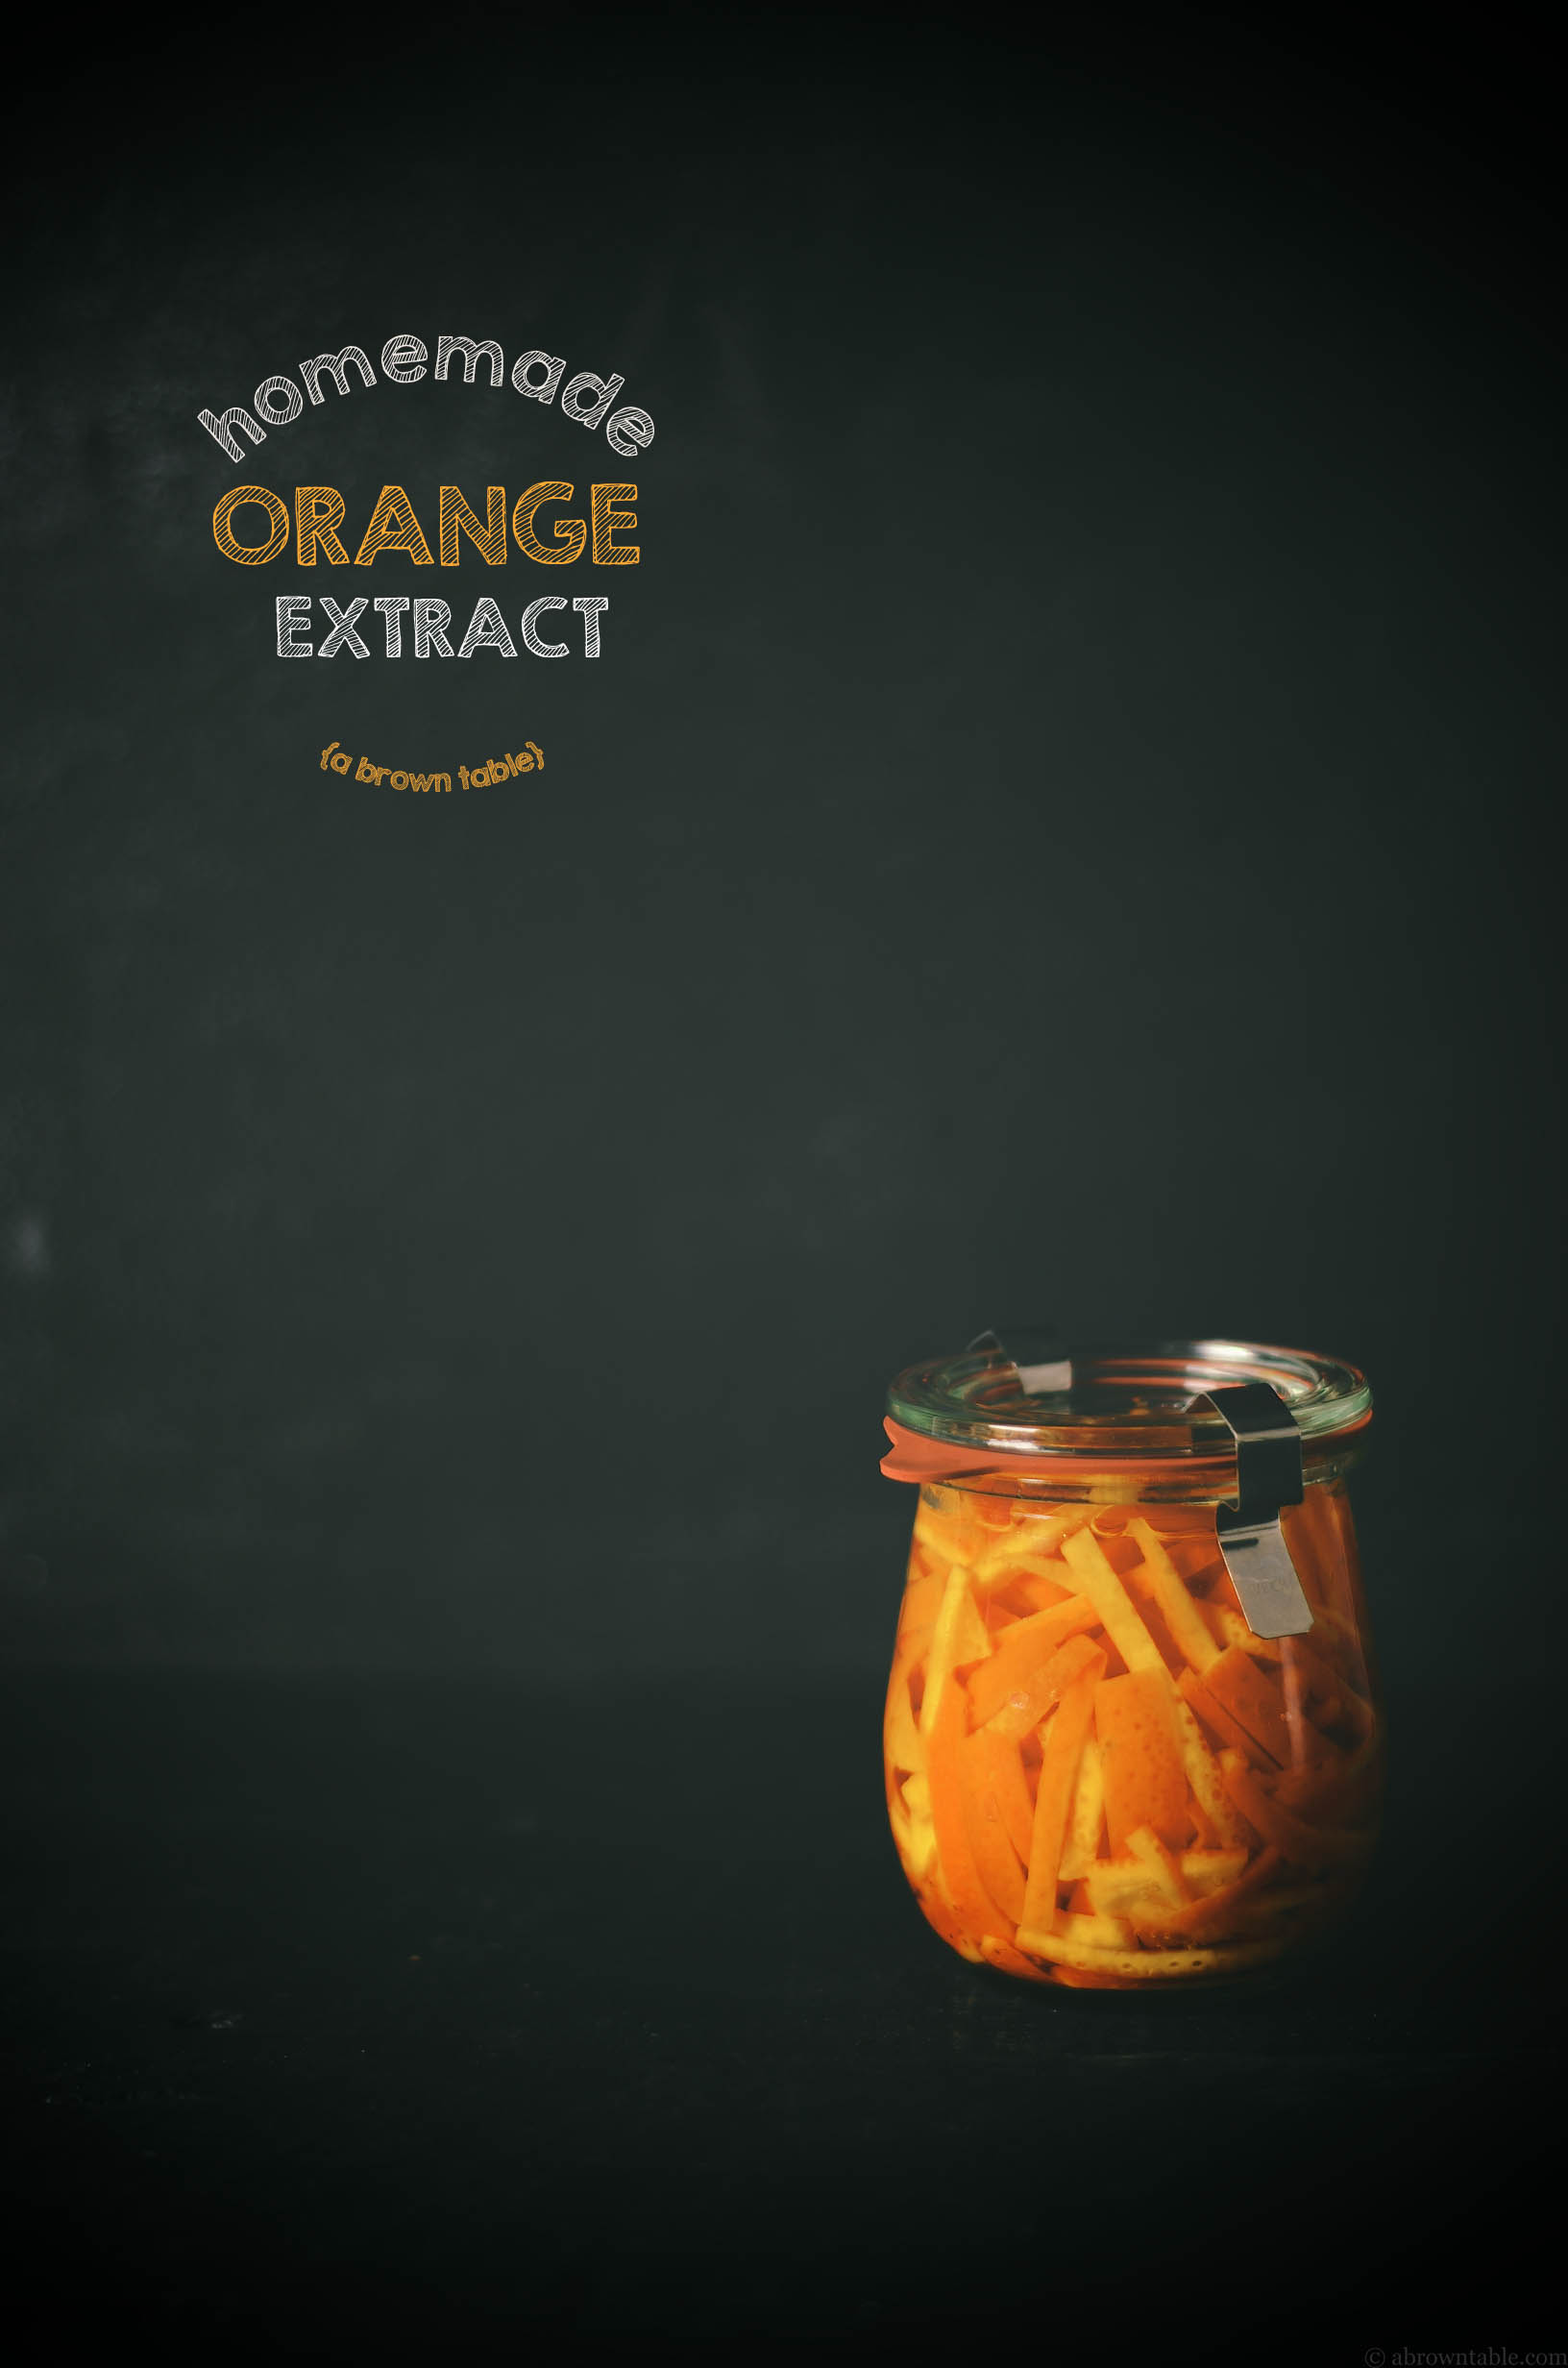 homemade orange extract baking